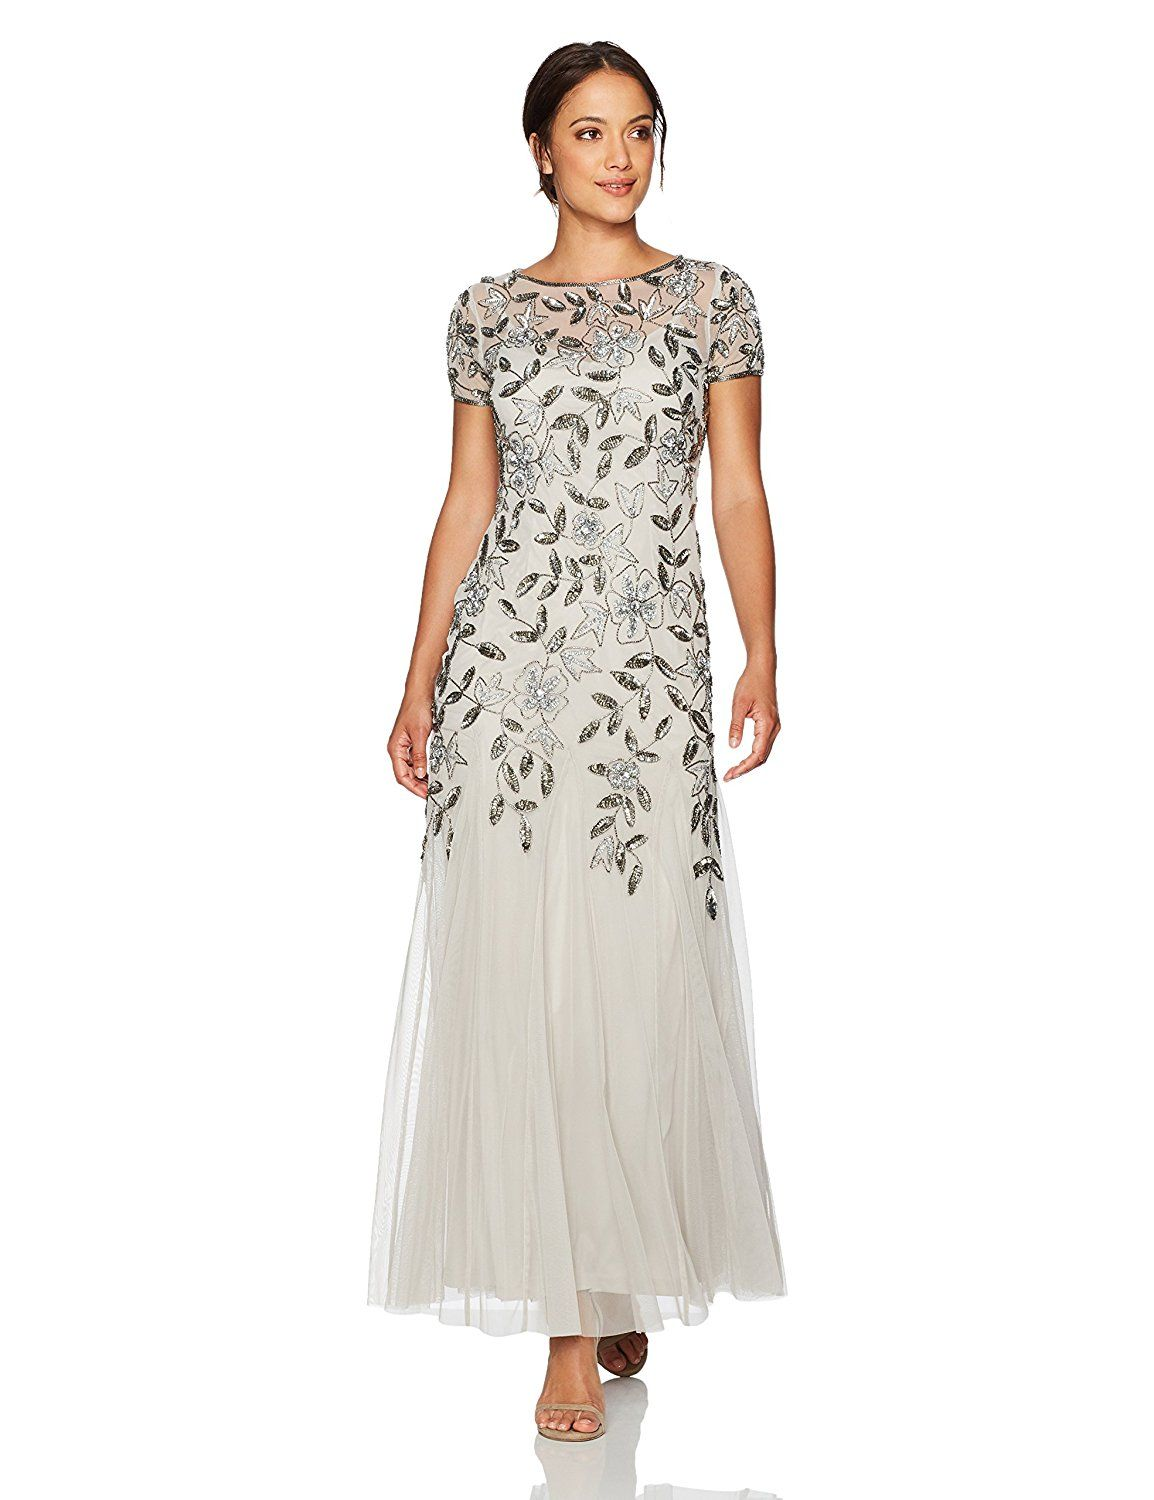 Adrianna Papell Women\'s Petite Floral Beaded Godet Gown, Silver, 10P ...